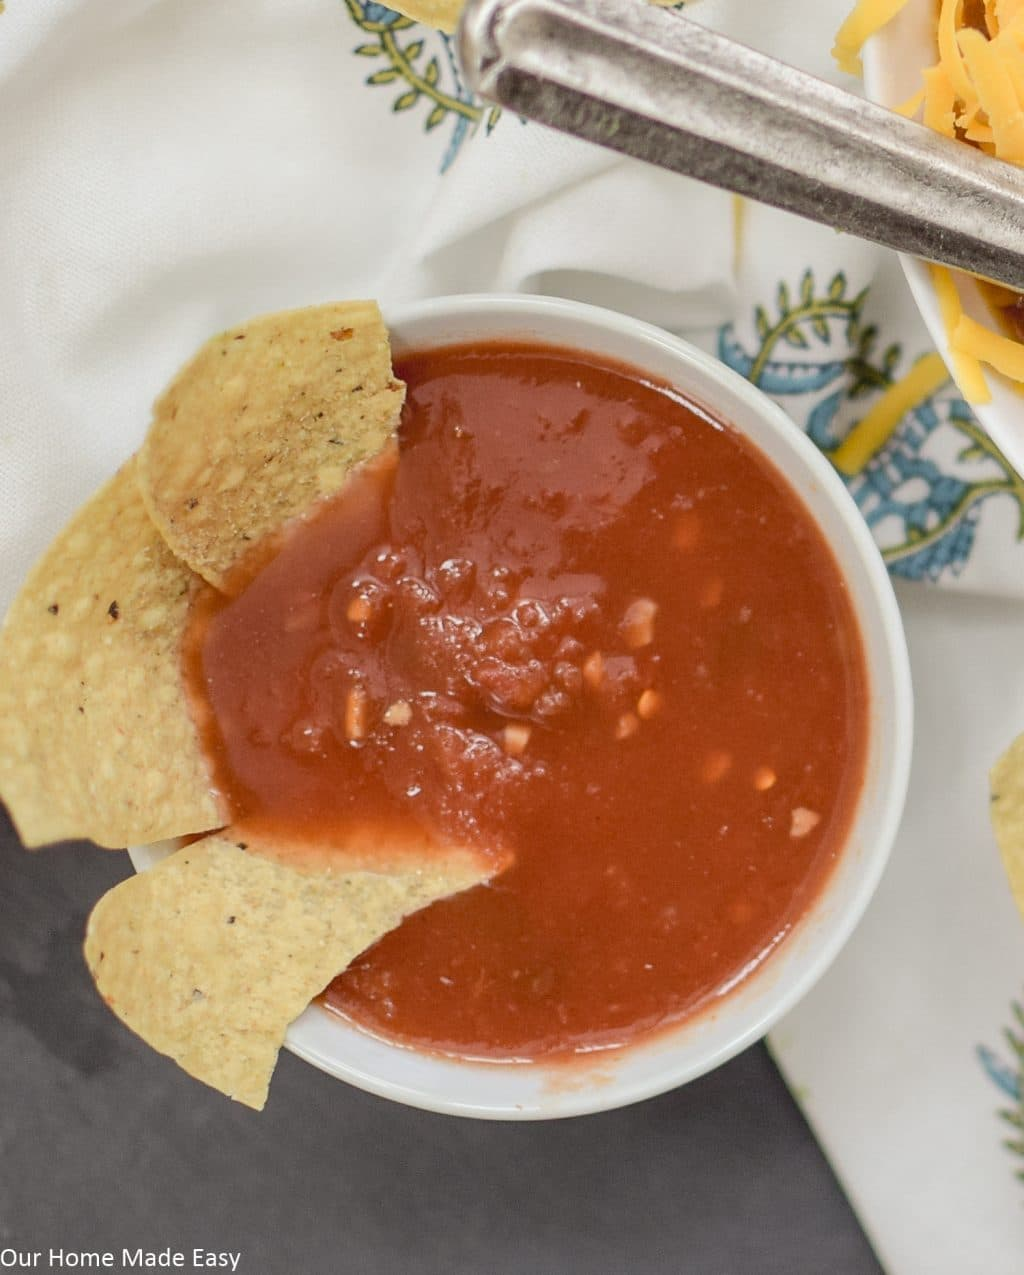 Chips and salsa is the perfect side to serve with this slow cooker tortilla soup recipe